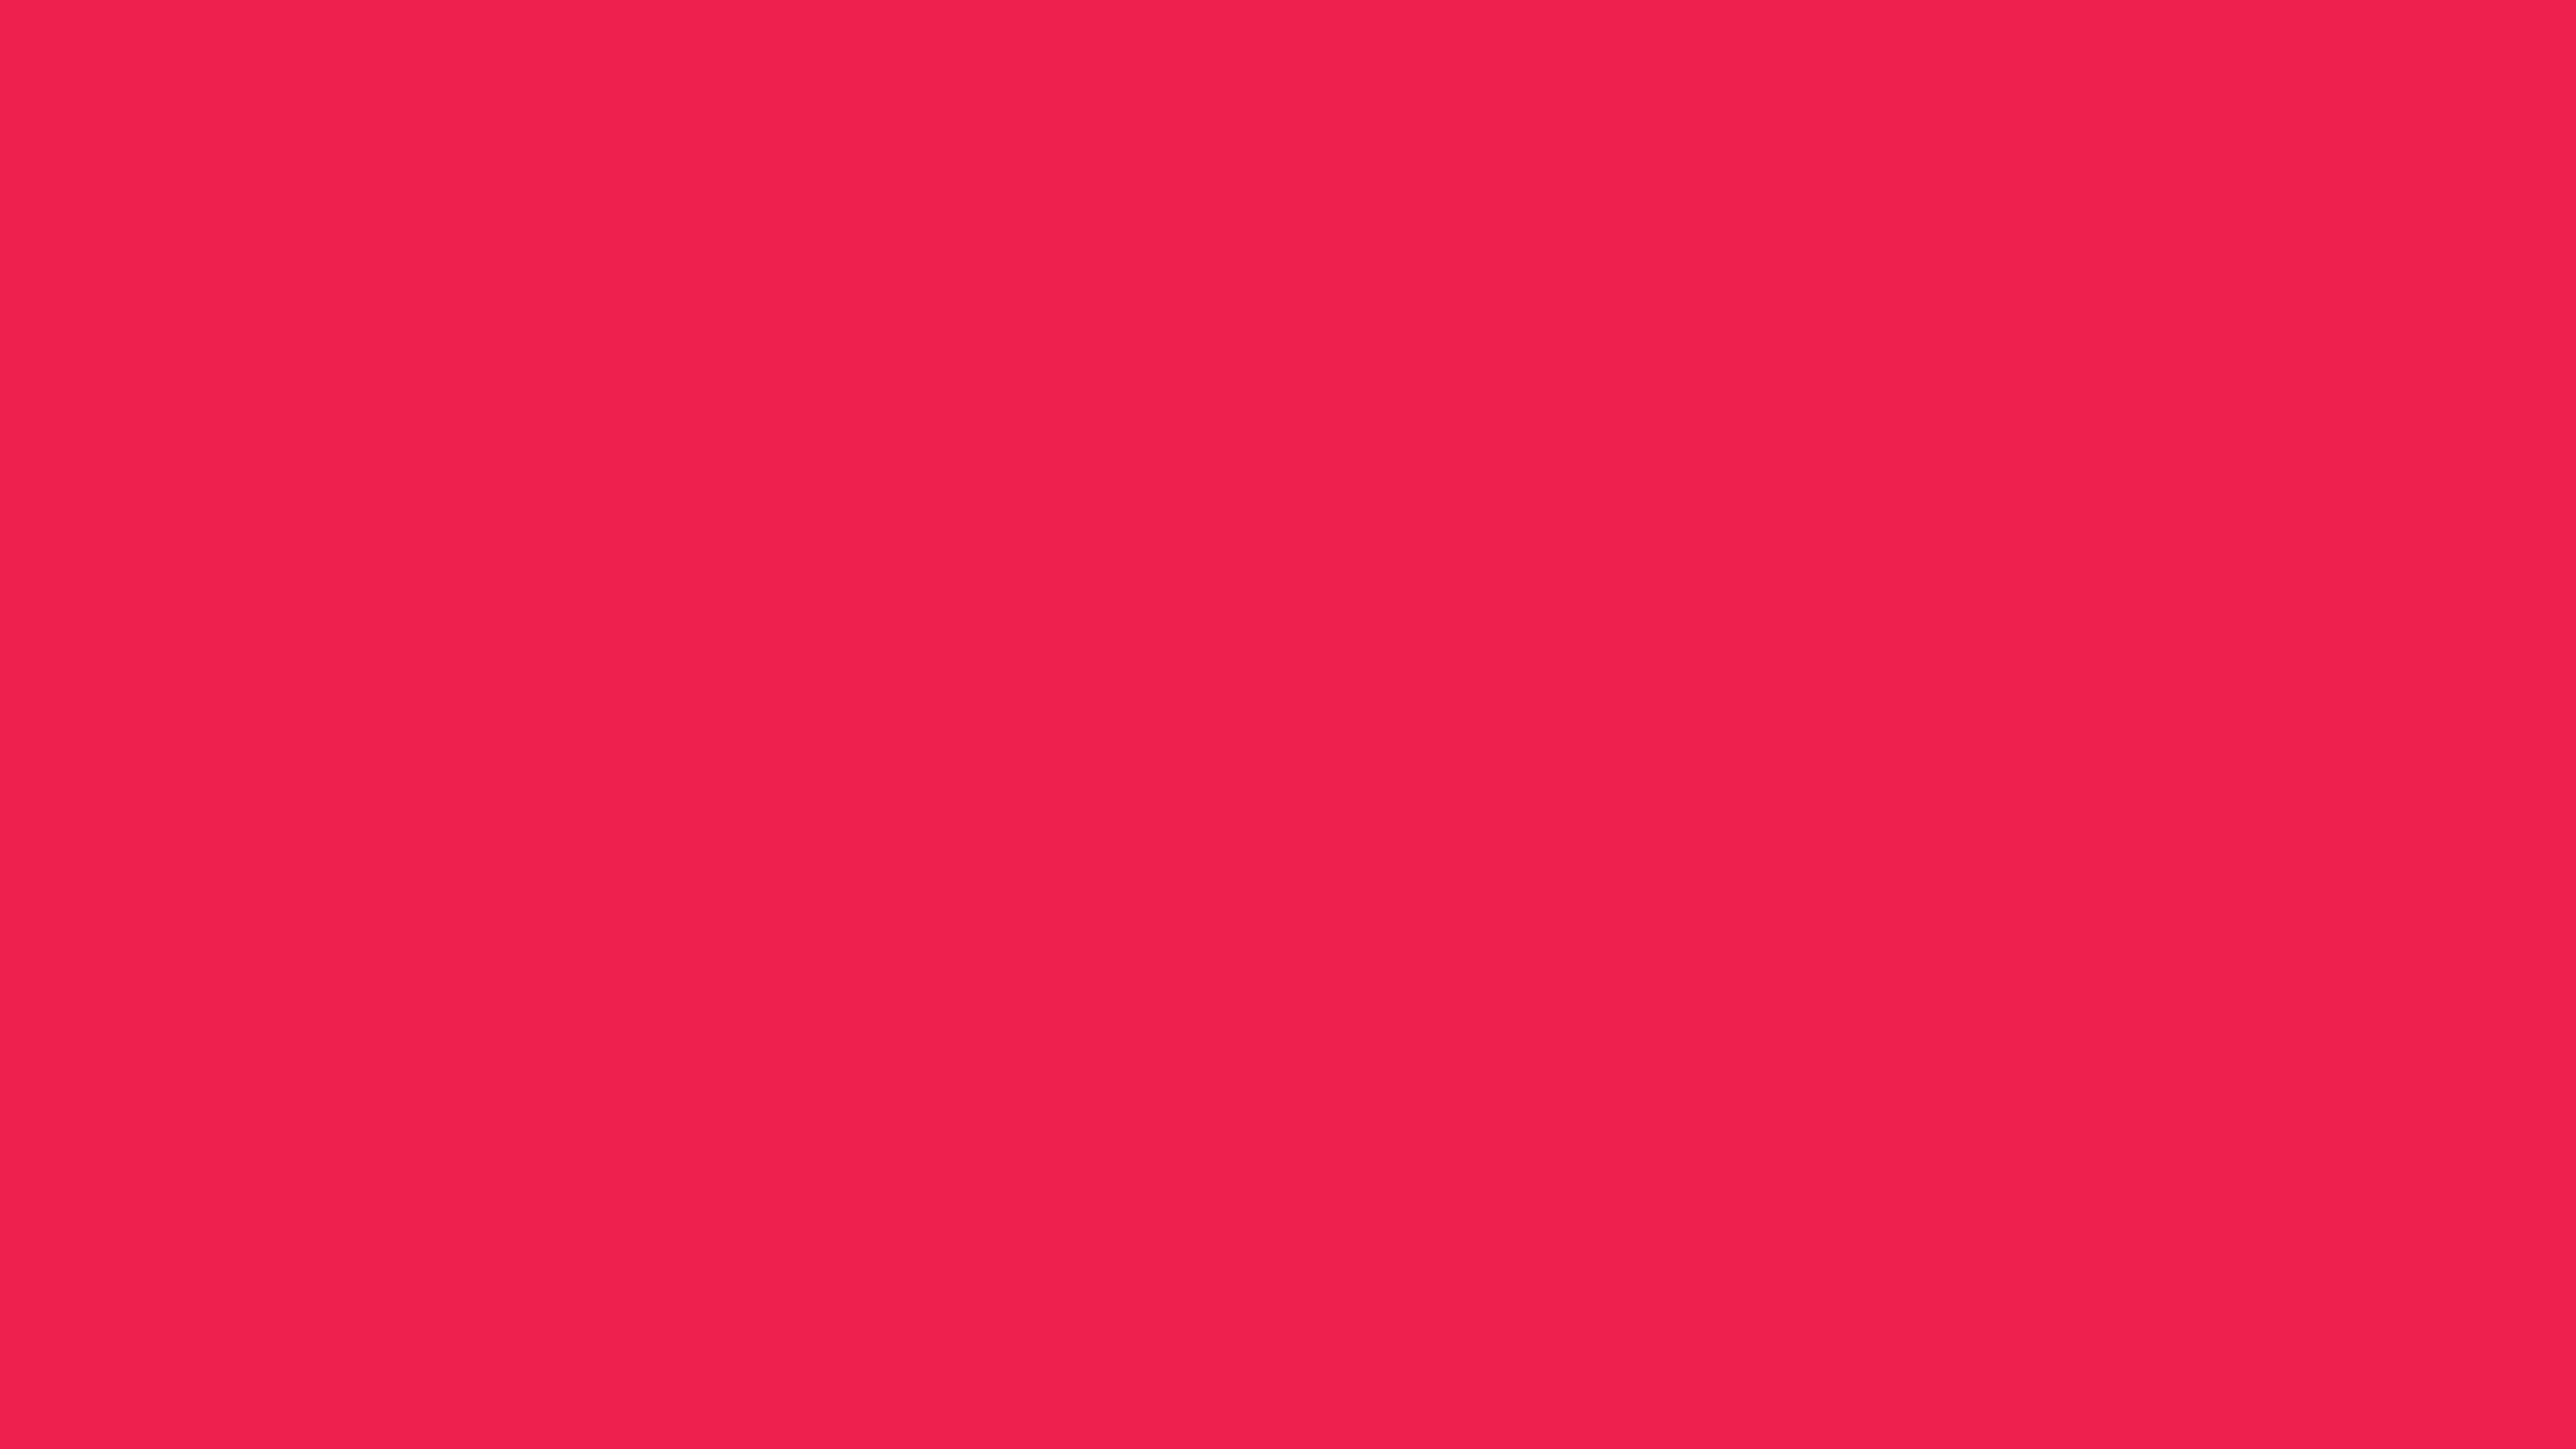 3840x2160 Red Crayola Solid Color Background